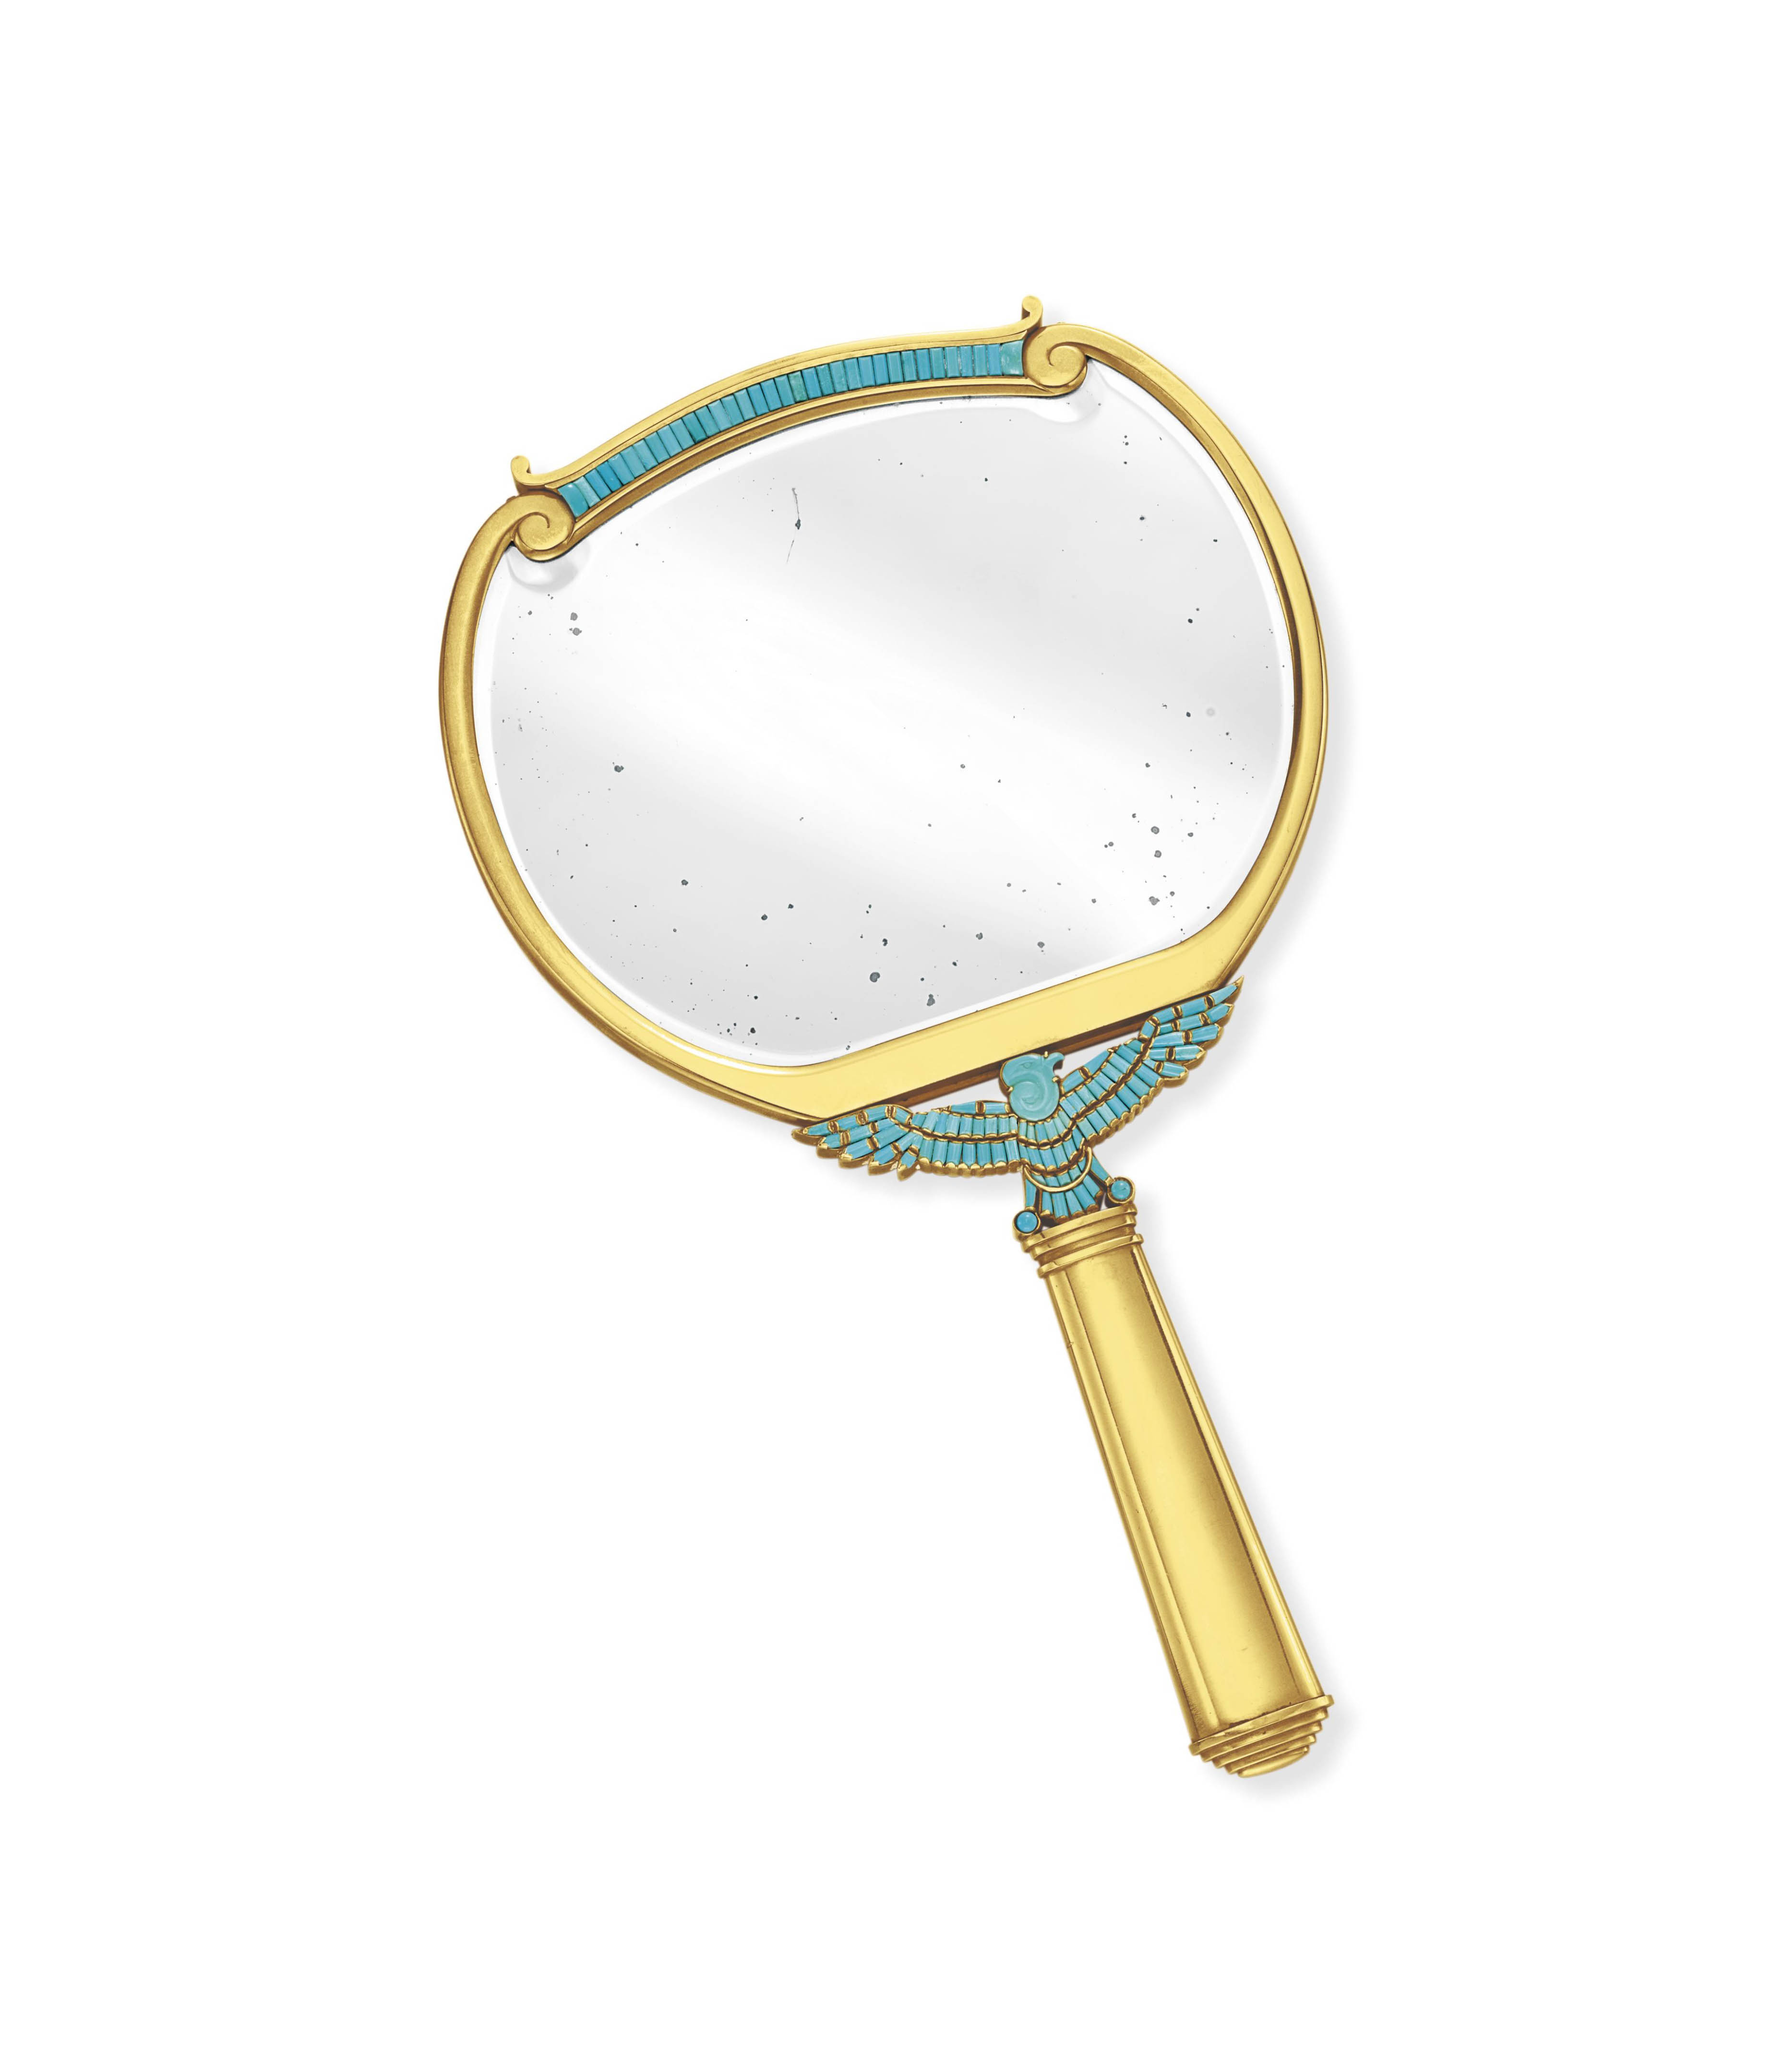 A TURQUOISE AND GOLD MIRROR, BY BVLGARI